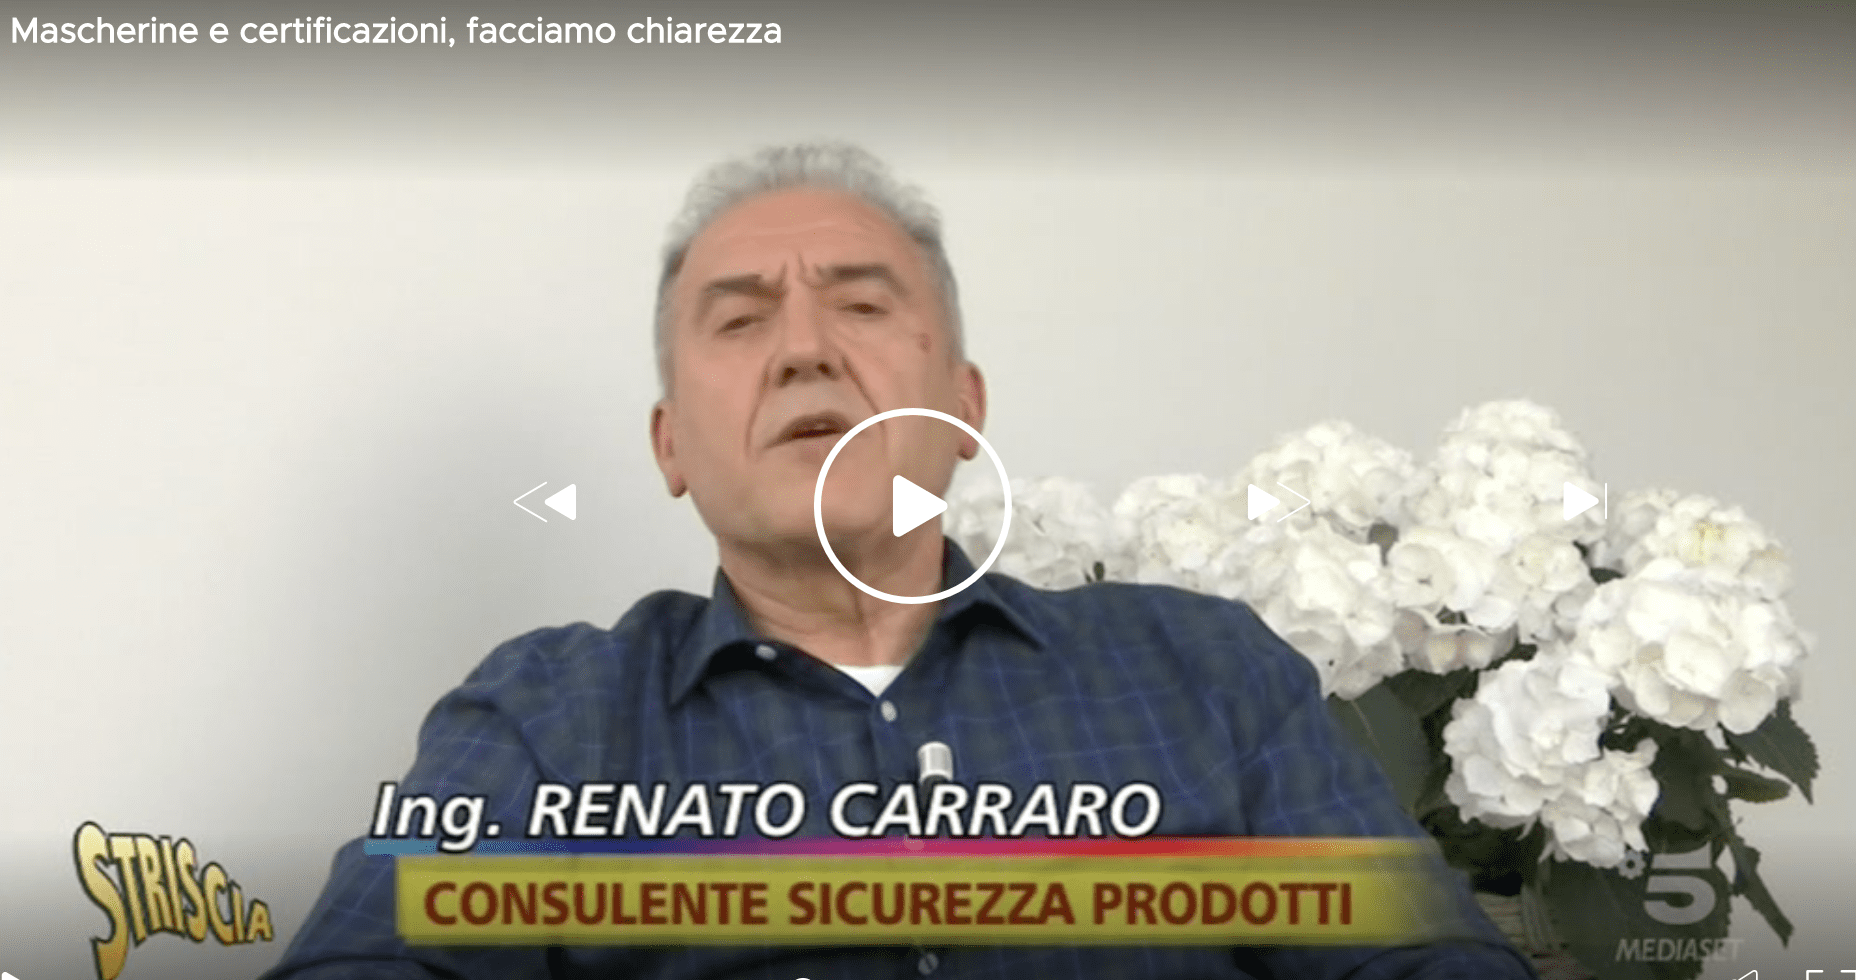 Video ing. Carraro C&C con striscia la notizia